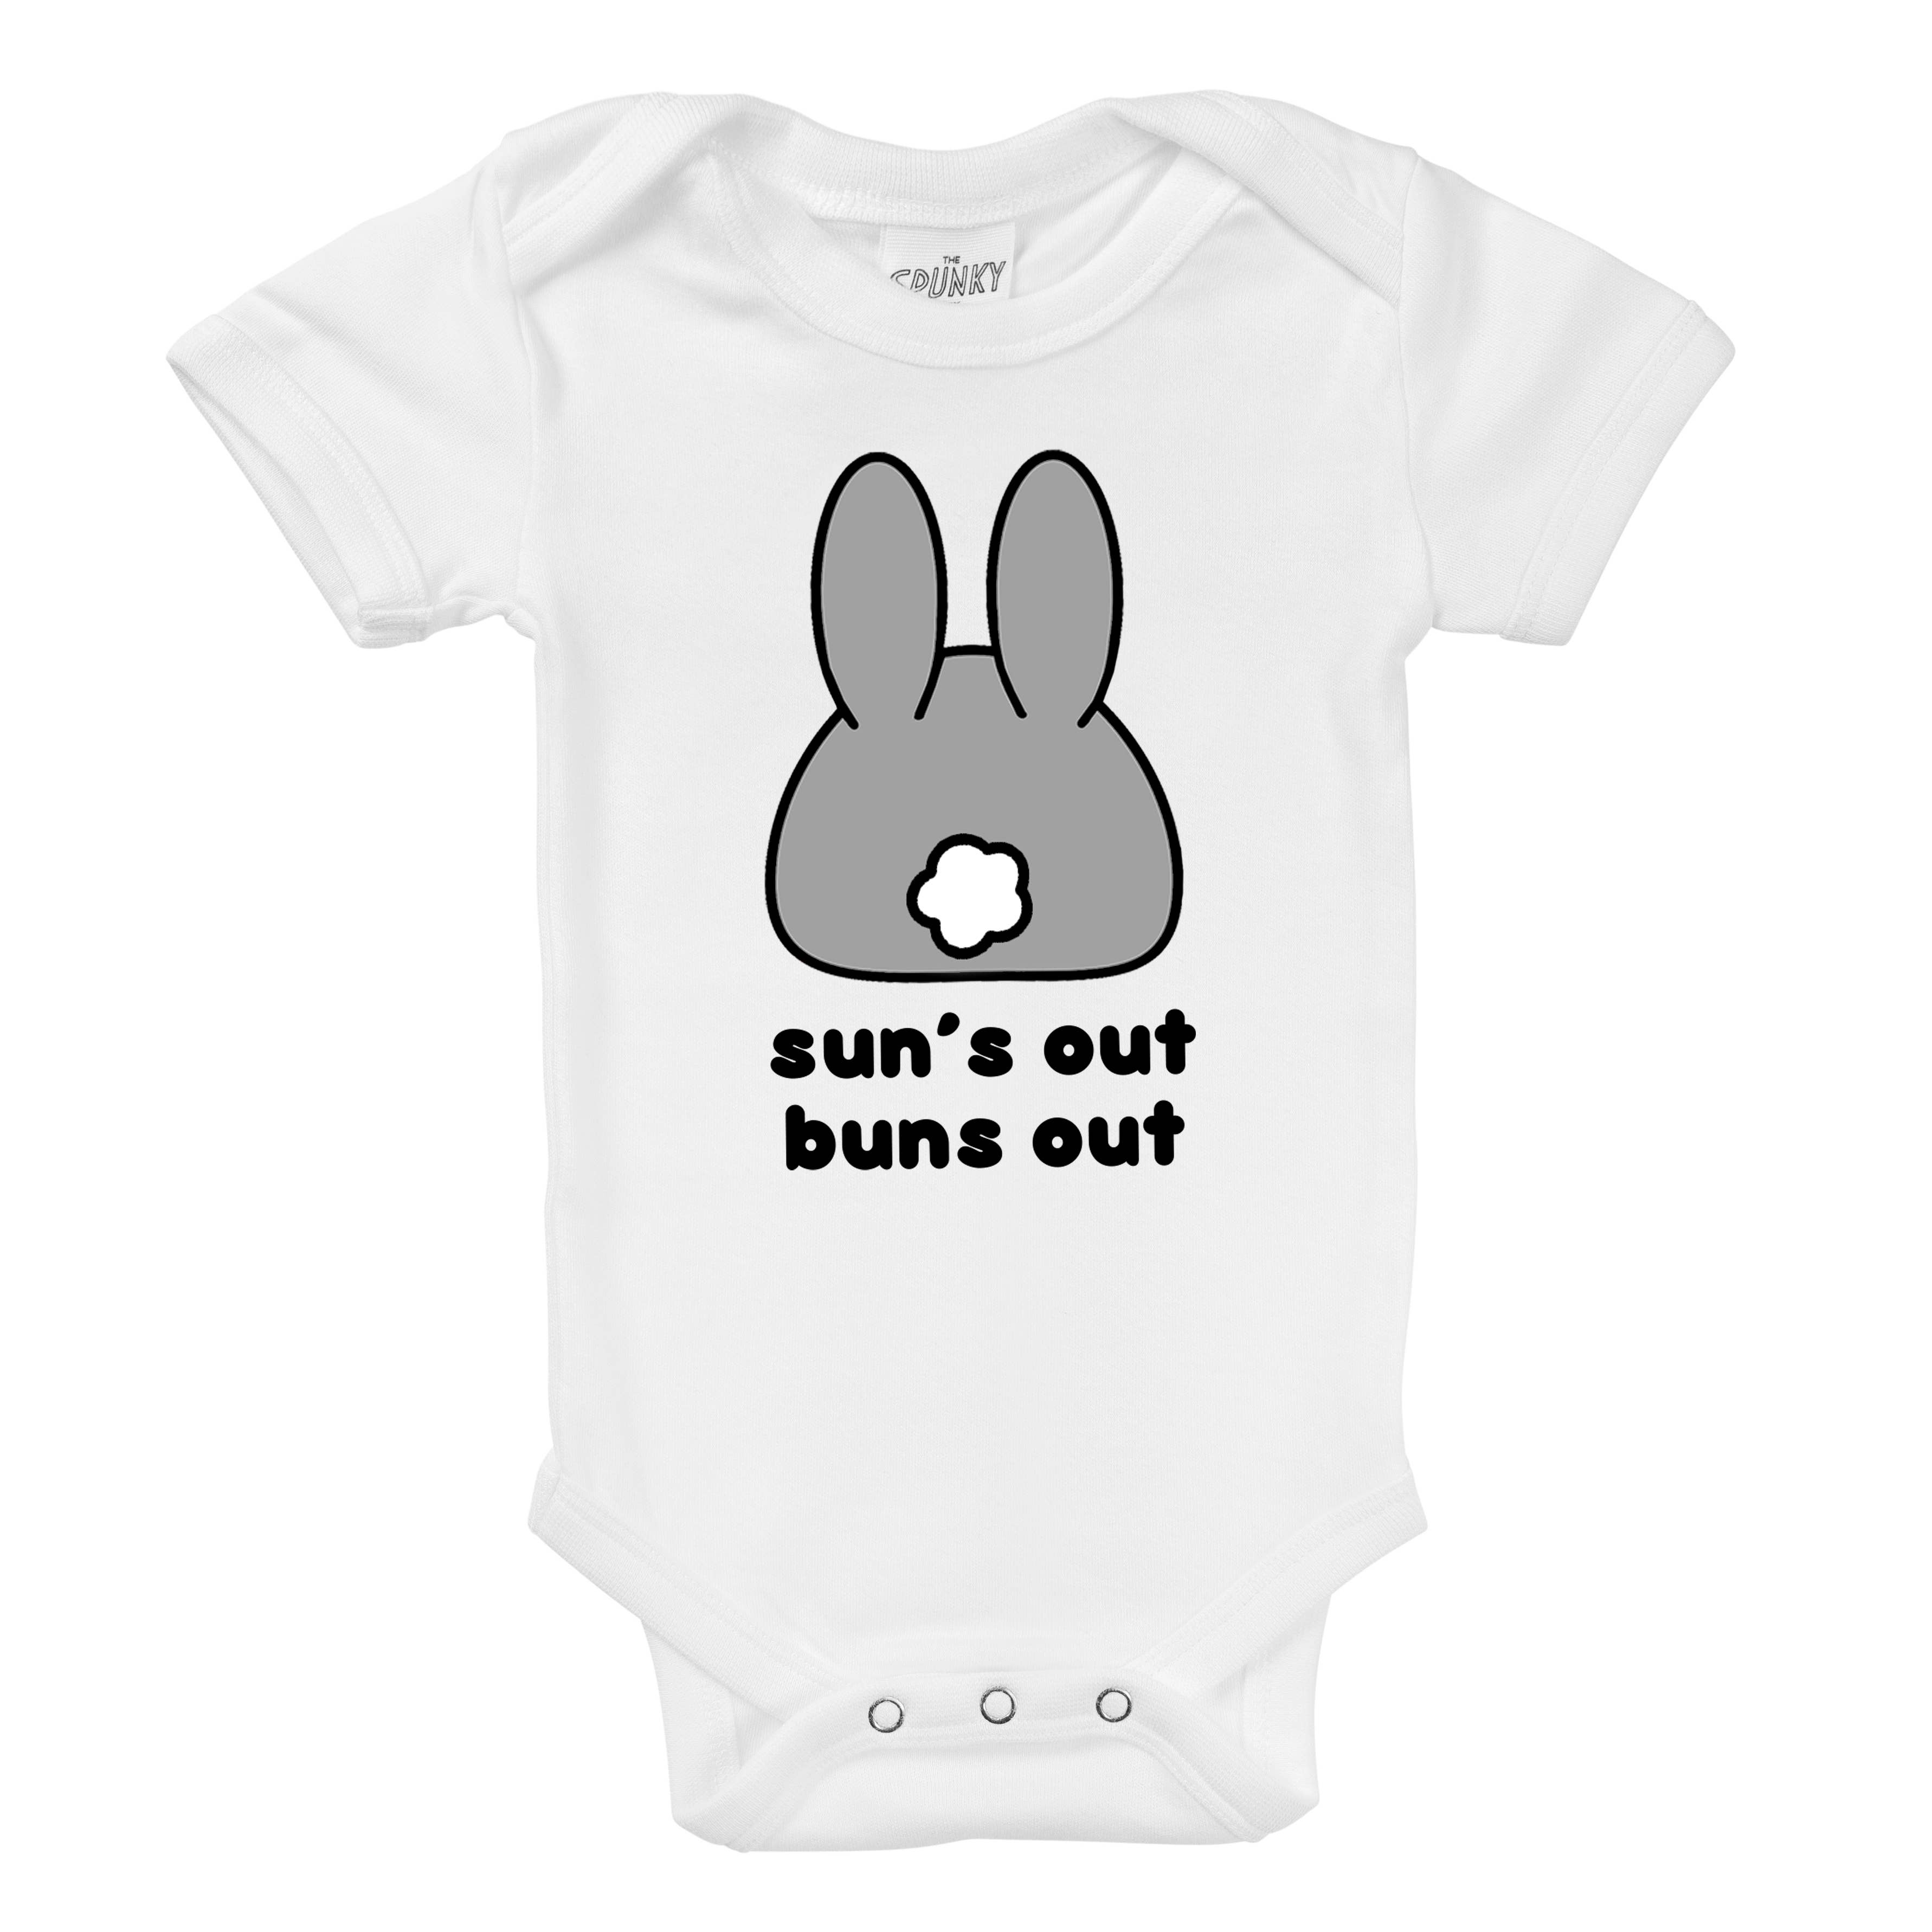 April Baby Coming Home Outfit Honey Bunny Toddler Long Sleeve Shirt Easter Day Bodysuit Toddler Tee Spring Outfit